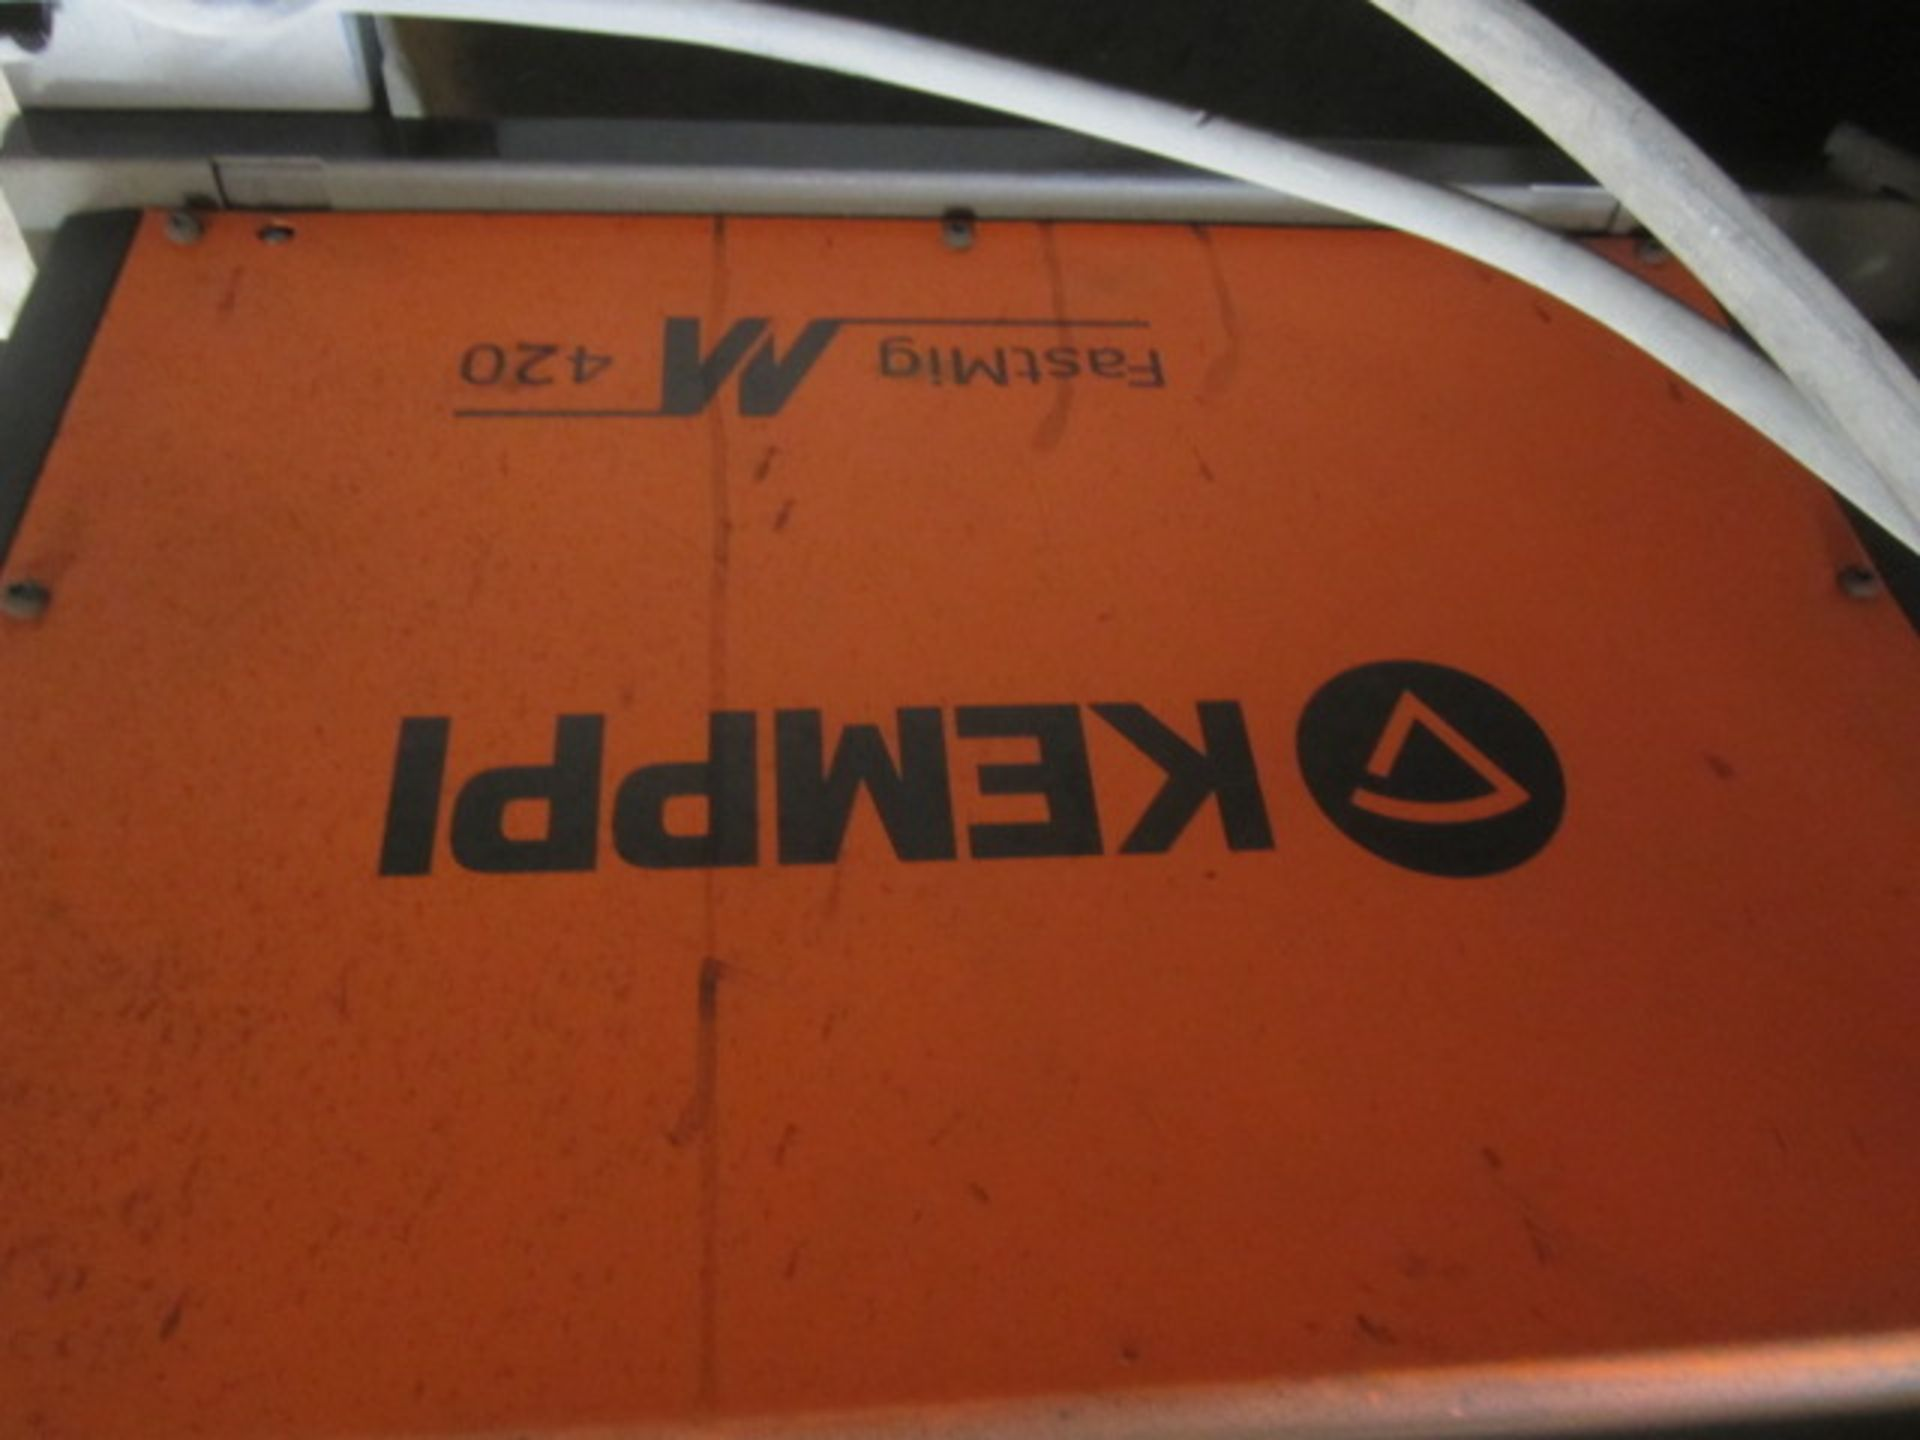 Kemppi Fast Mig M420 mig welder, serial no. 2674175, with Fast Mig MXF65 wire feeder, serial no. - Image 5 of 7